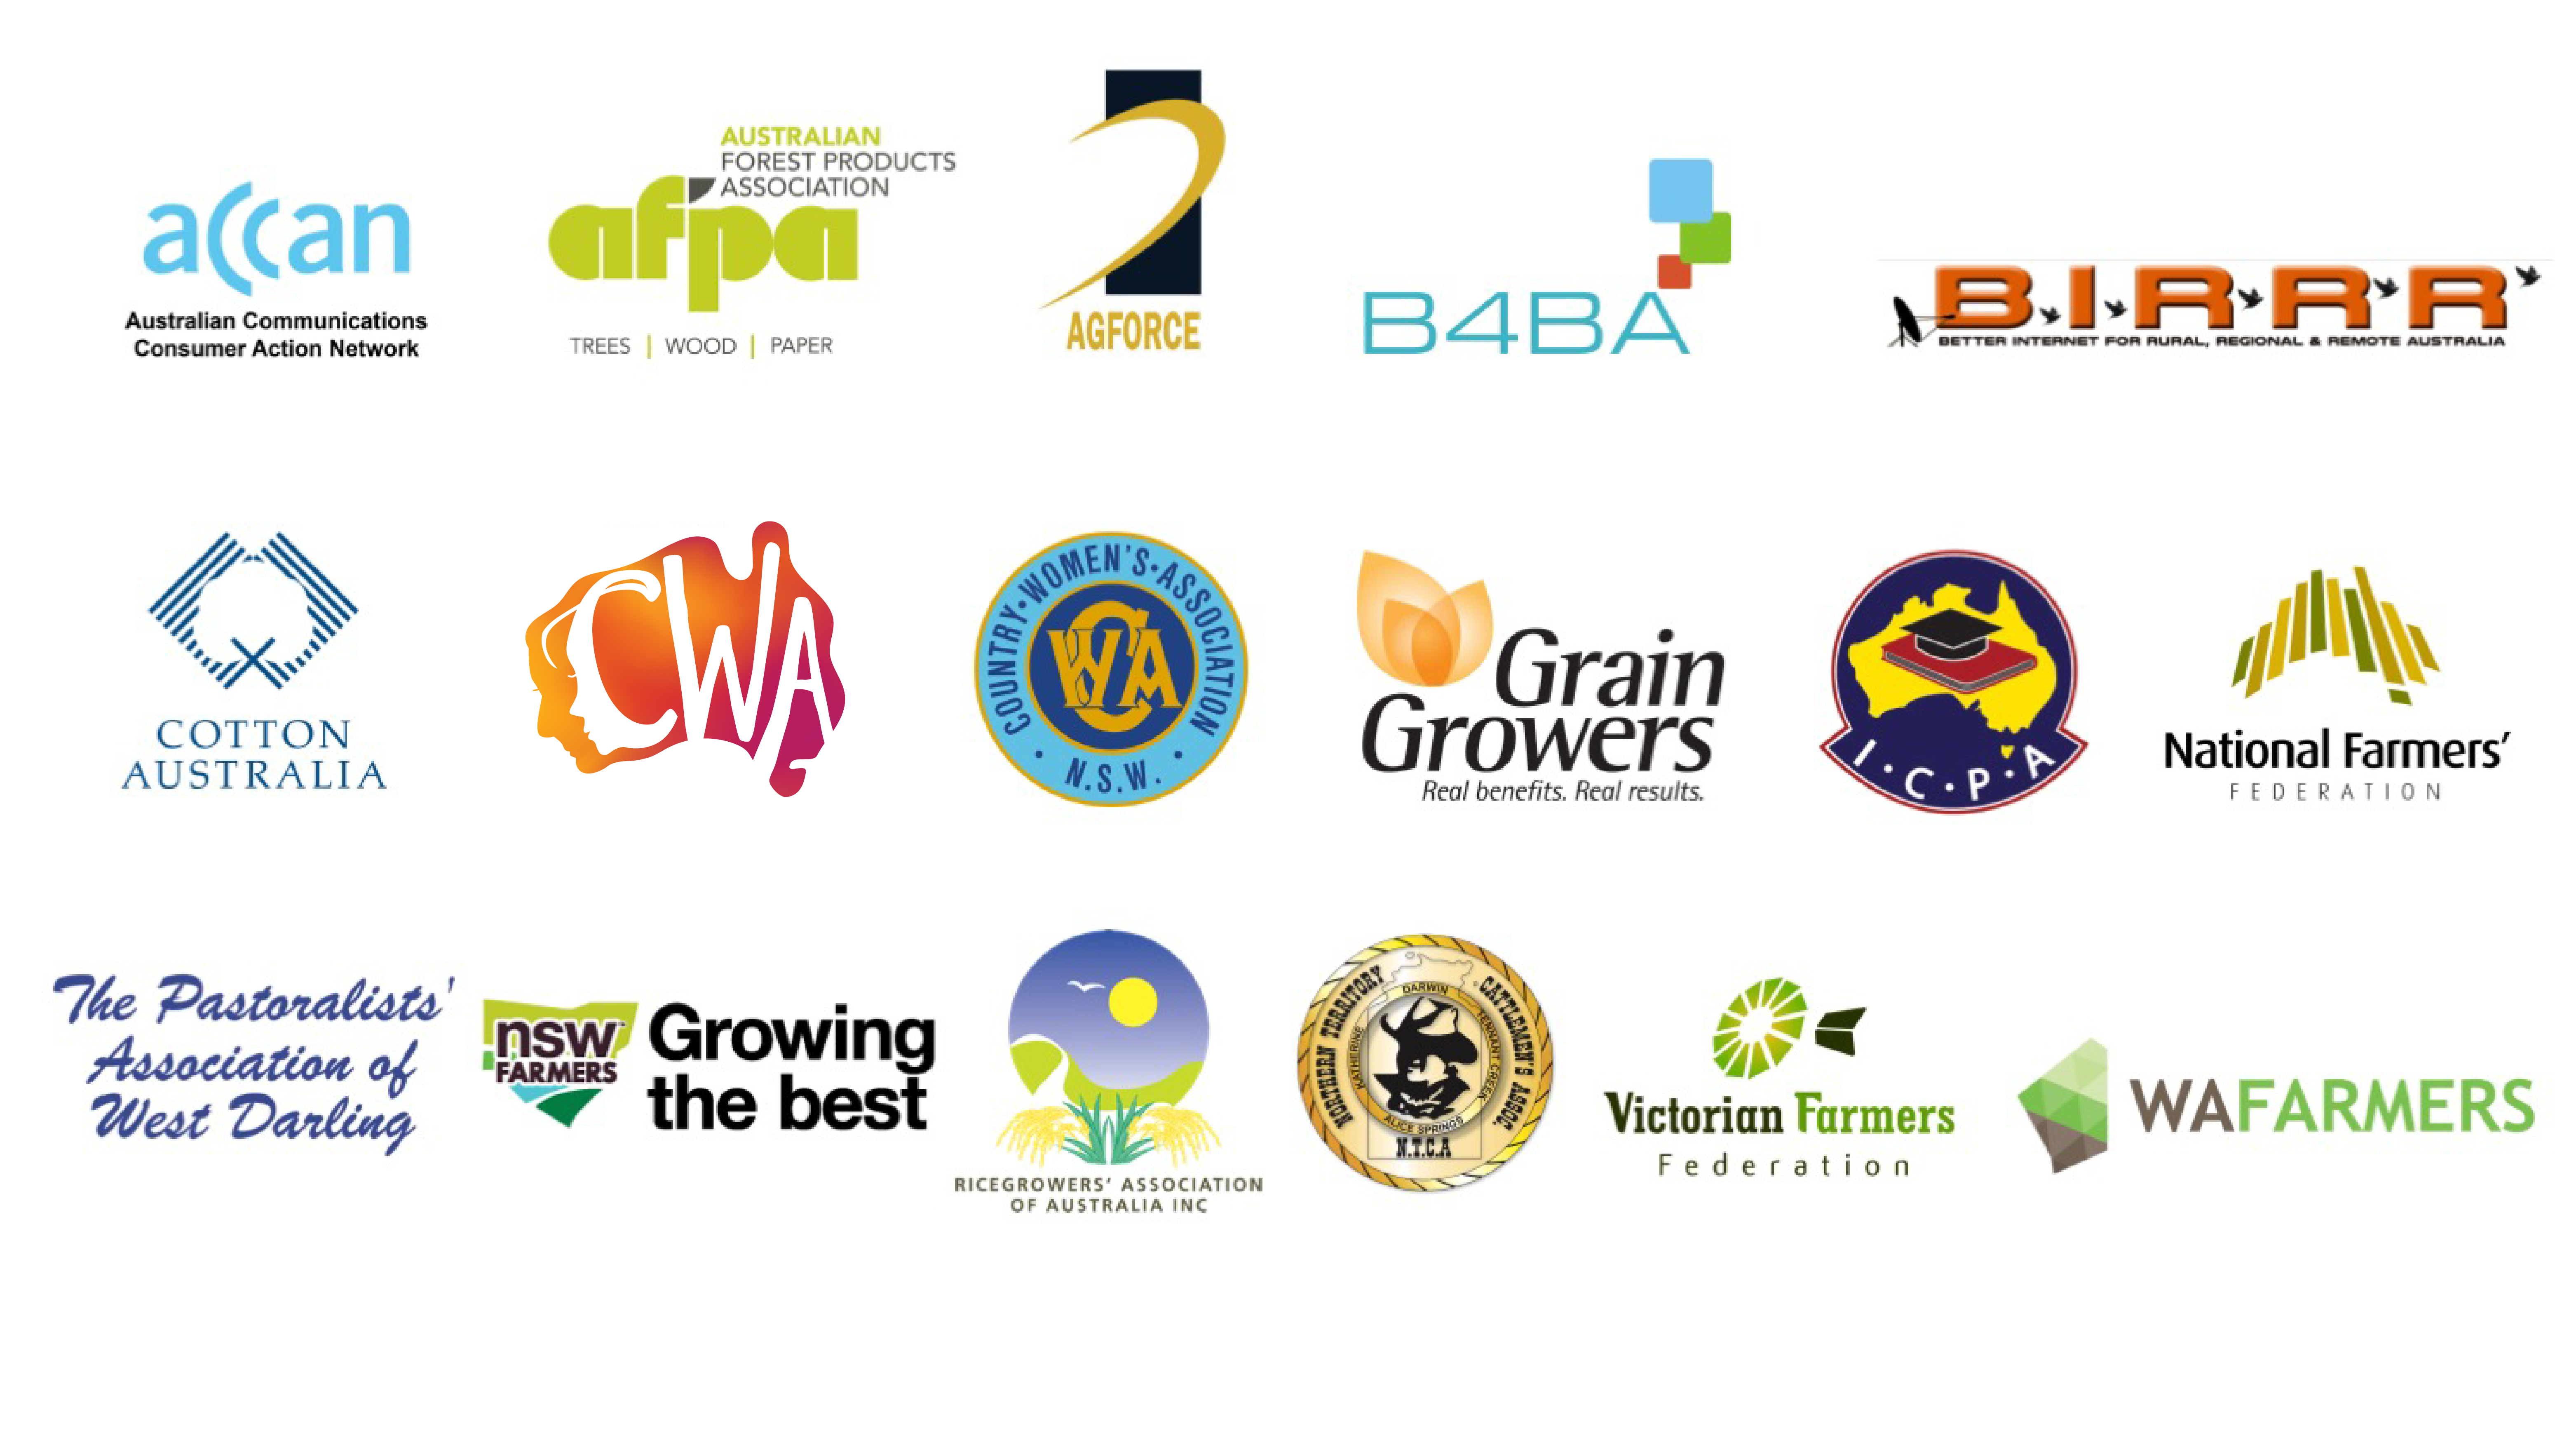 Coalition partner logos